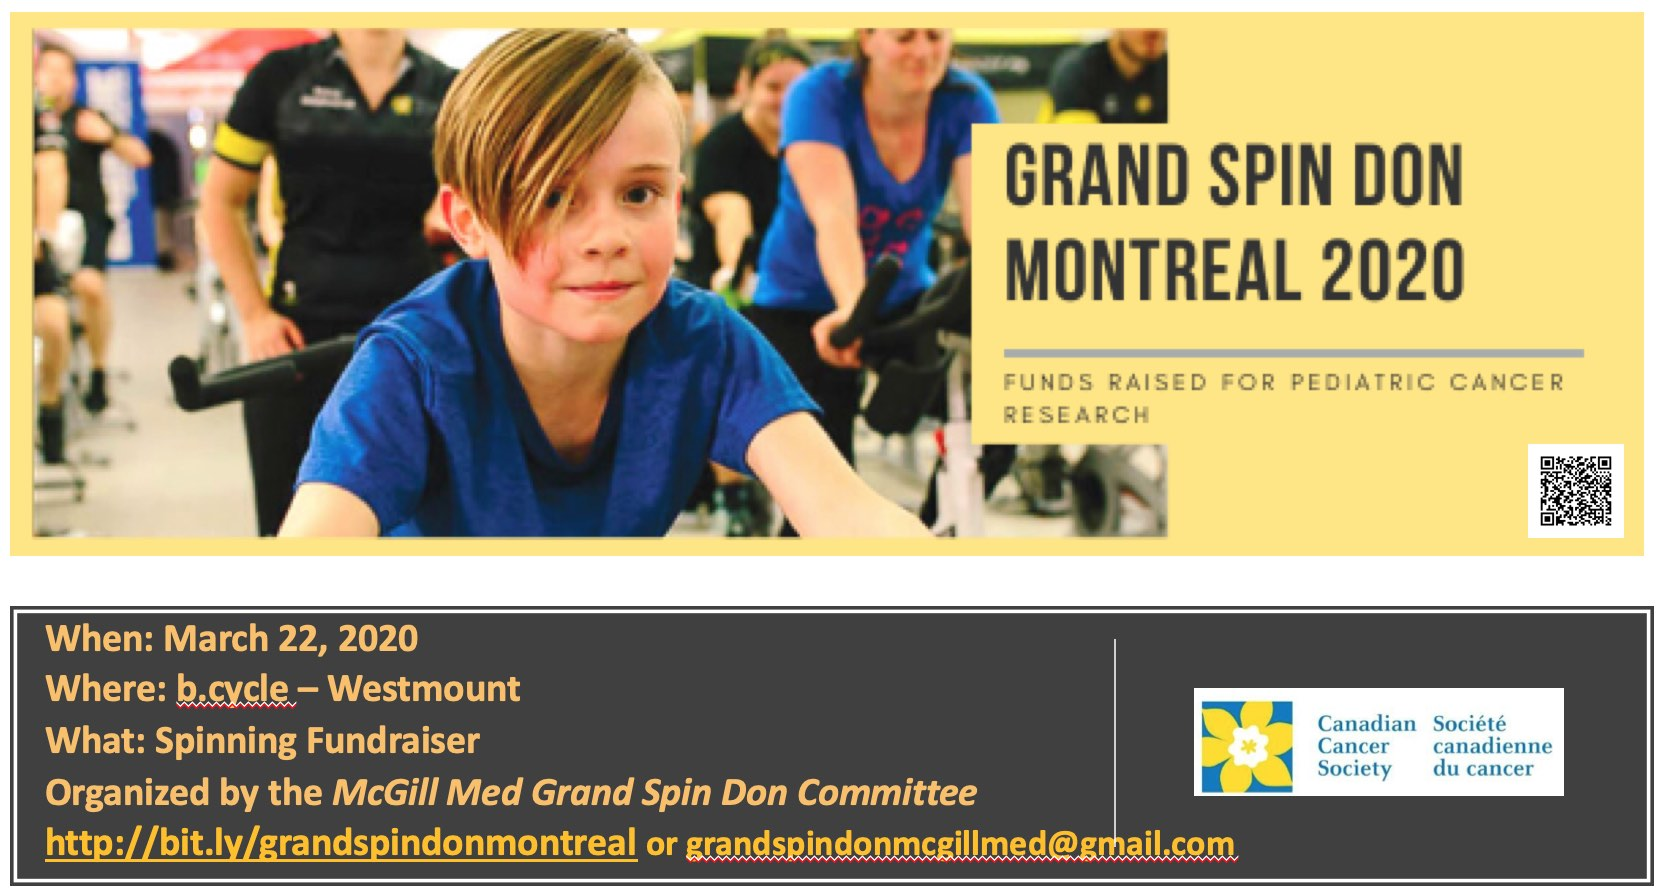 Grand Spin Don Montreal 2020